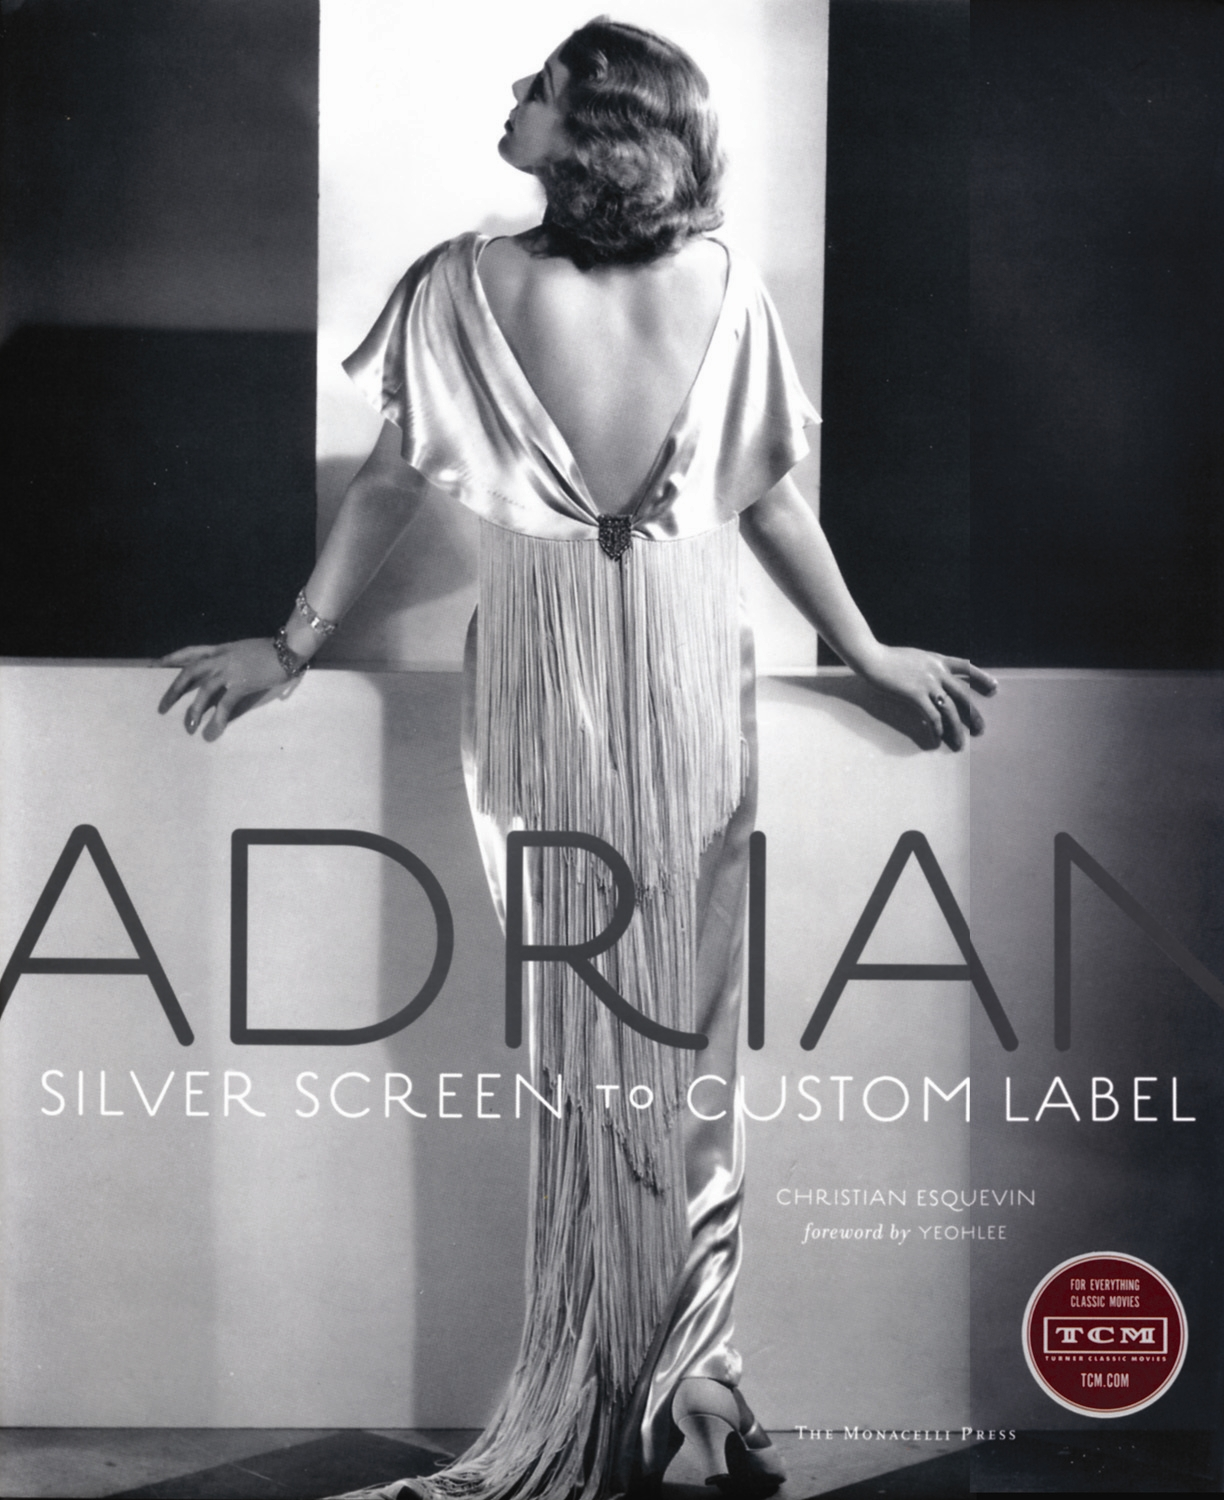 Adrian book cover